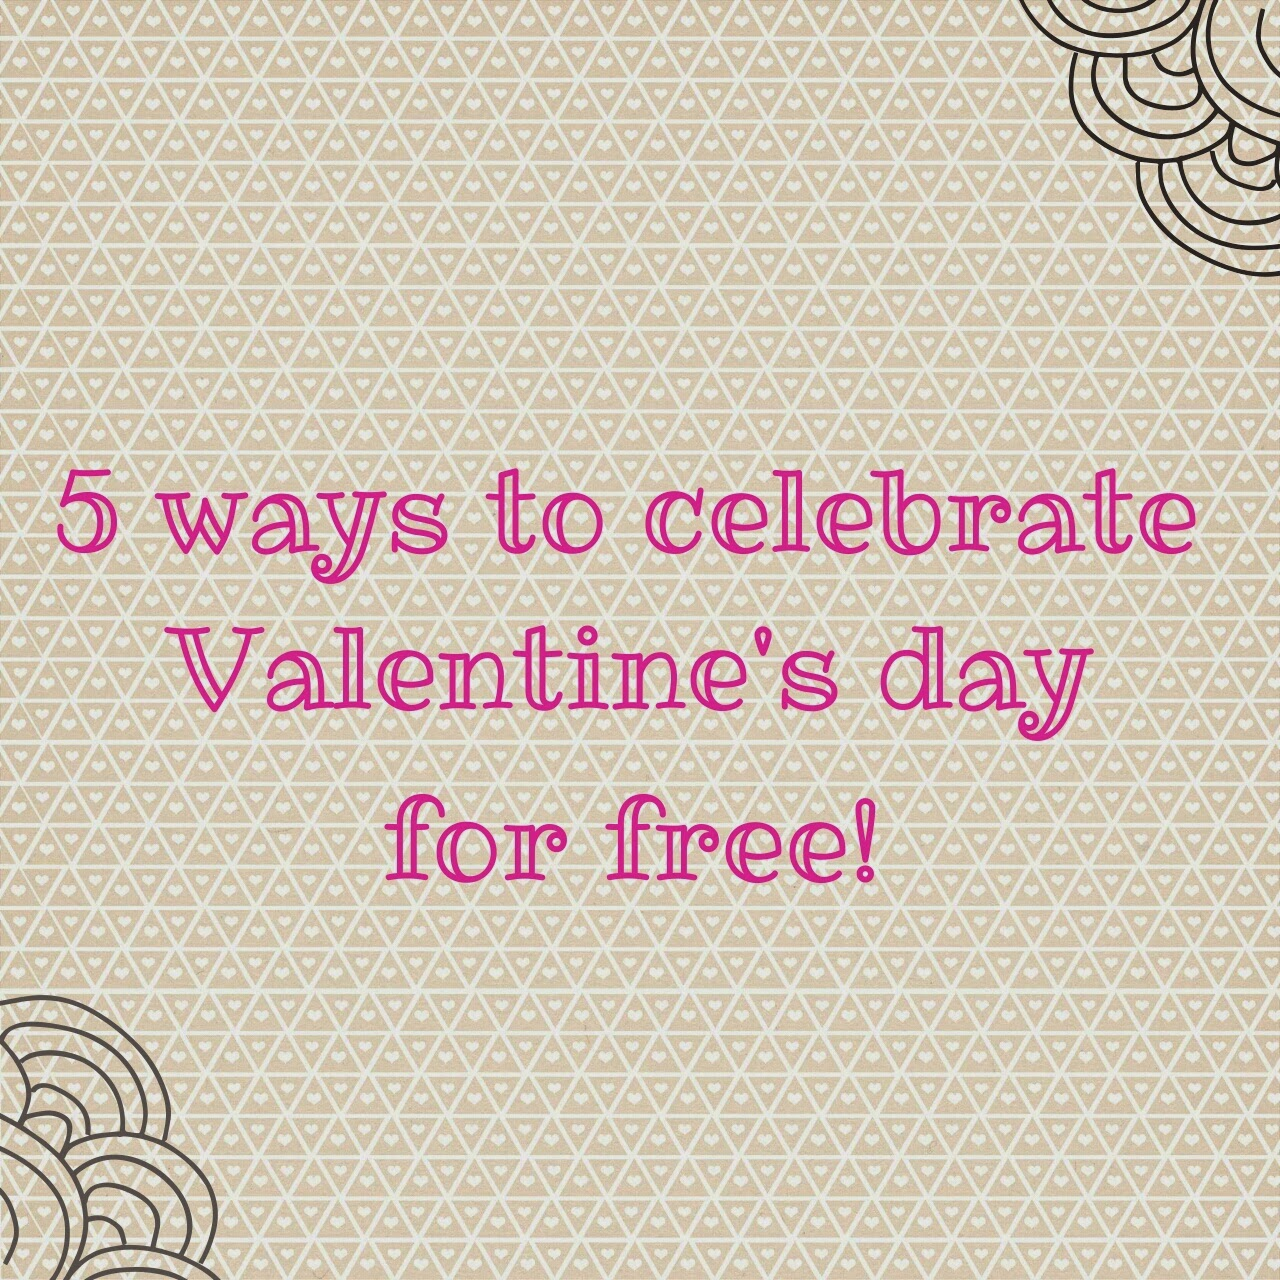 Love, Juliebug: 5 Ways to Celebrate Valentine's Day for Free!